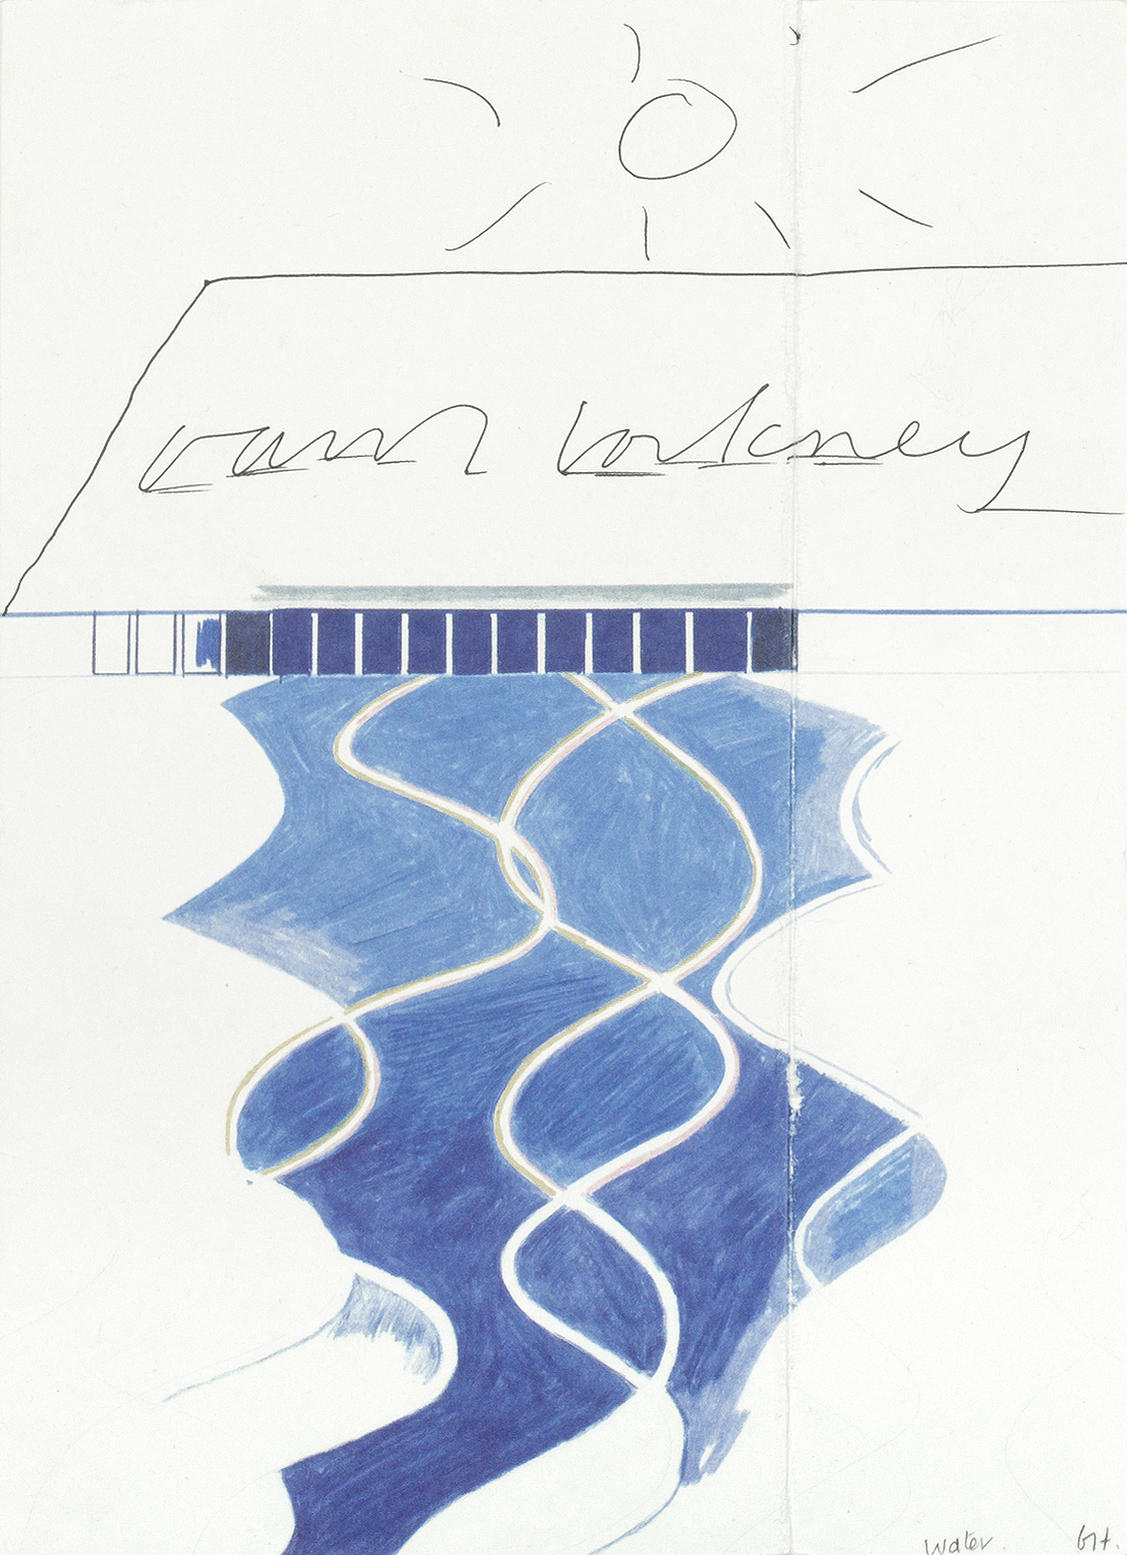 David Hockney-David Hockney - A Drawing Retrospective-1995